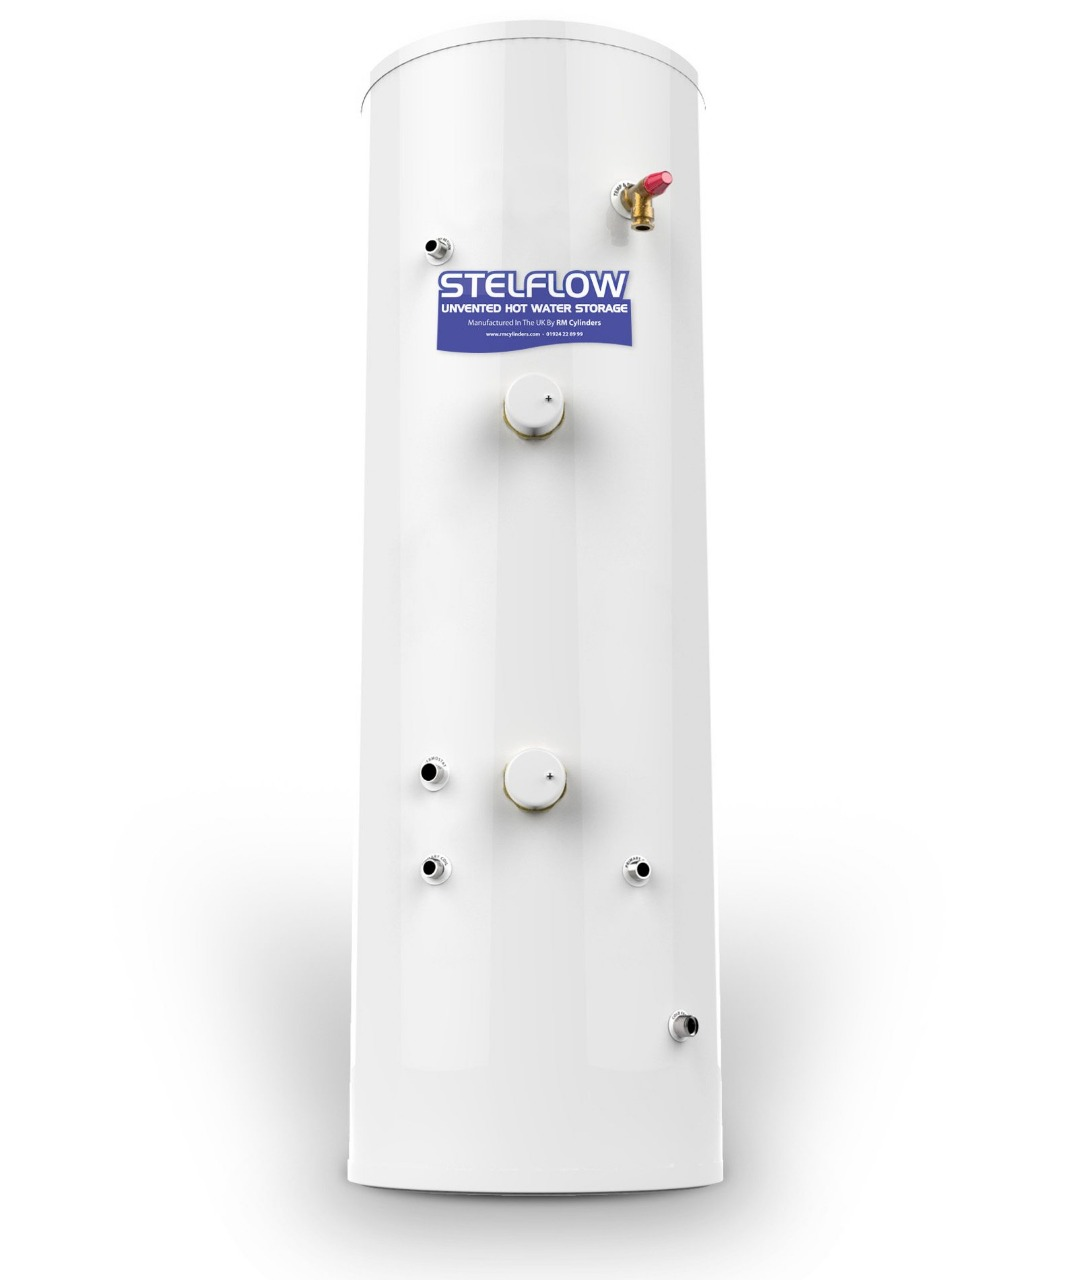 https://www.mepstock.co.uk/admin/images/Stelflow (RM) 150 L Direct Slimline Unvented Cylinder -  MEP Stock Ltd.jpeg